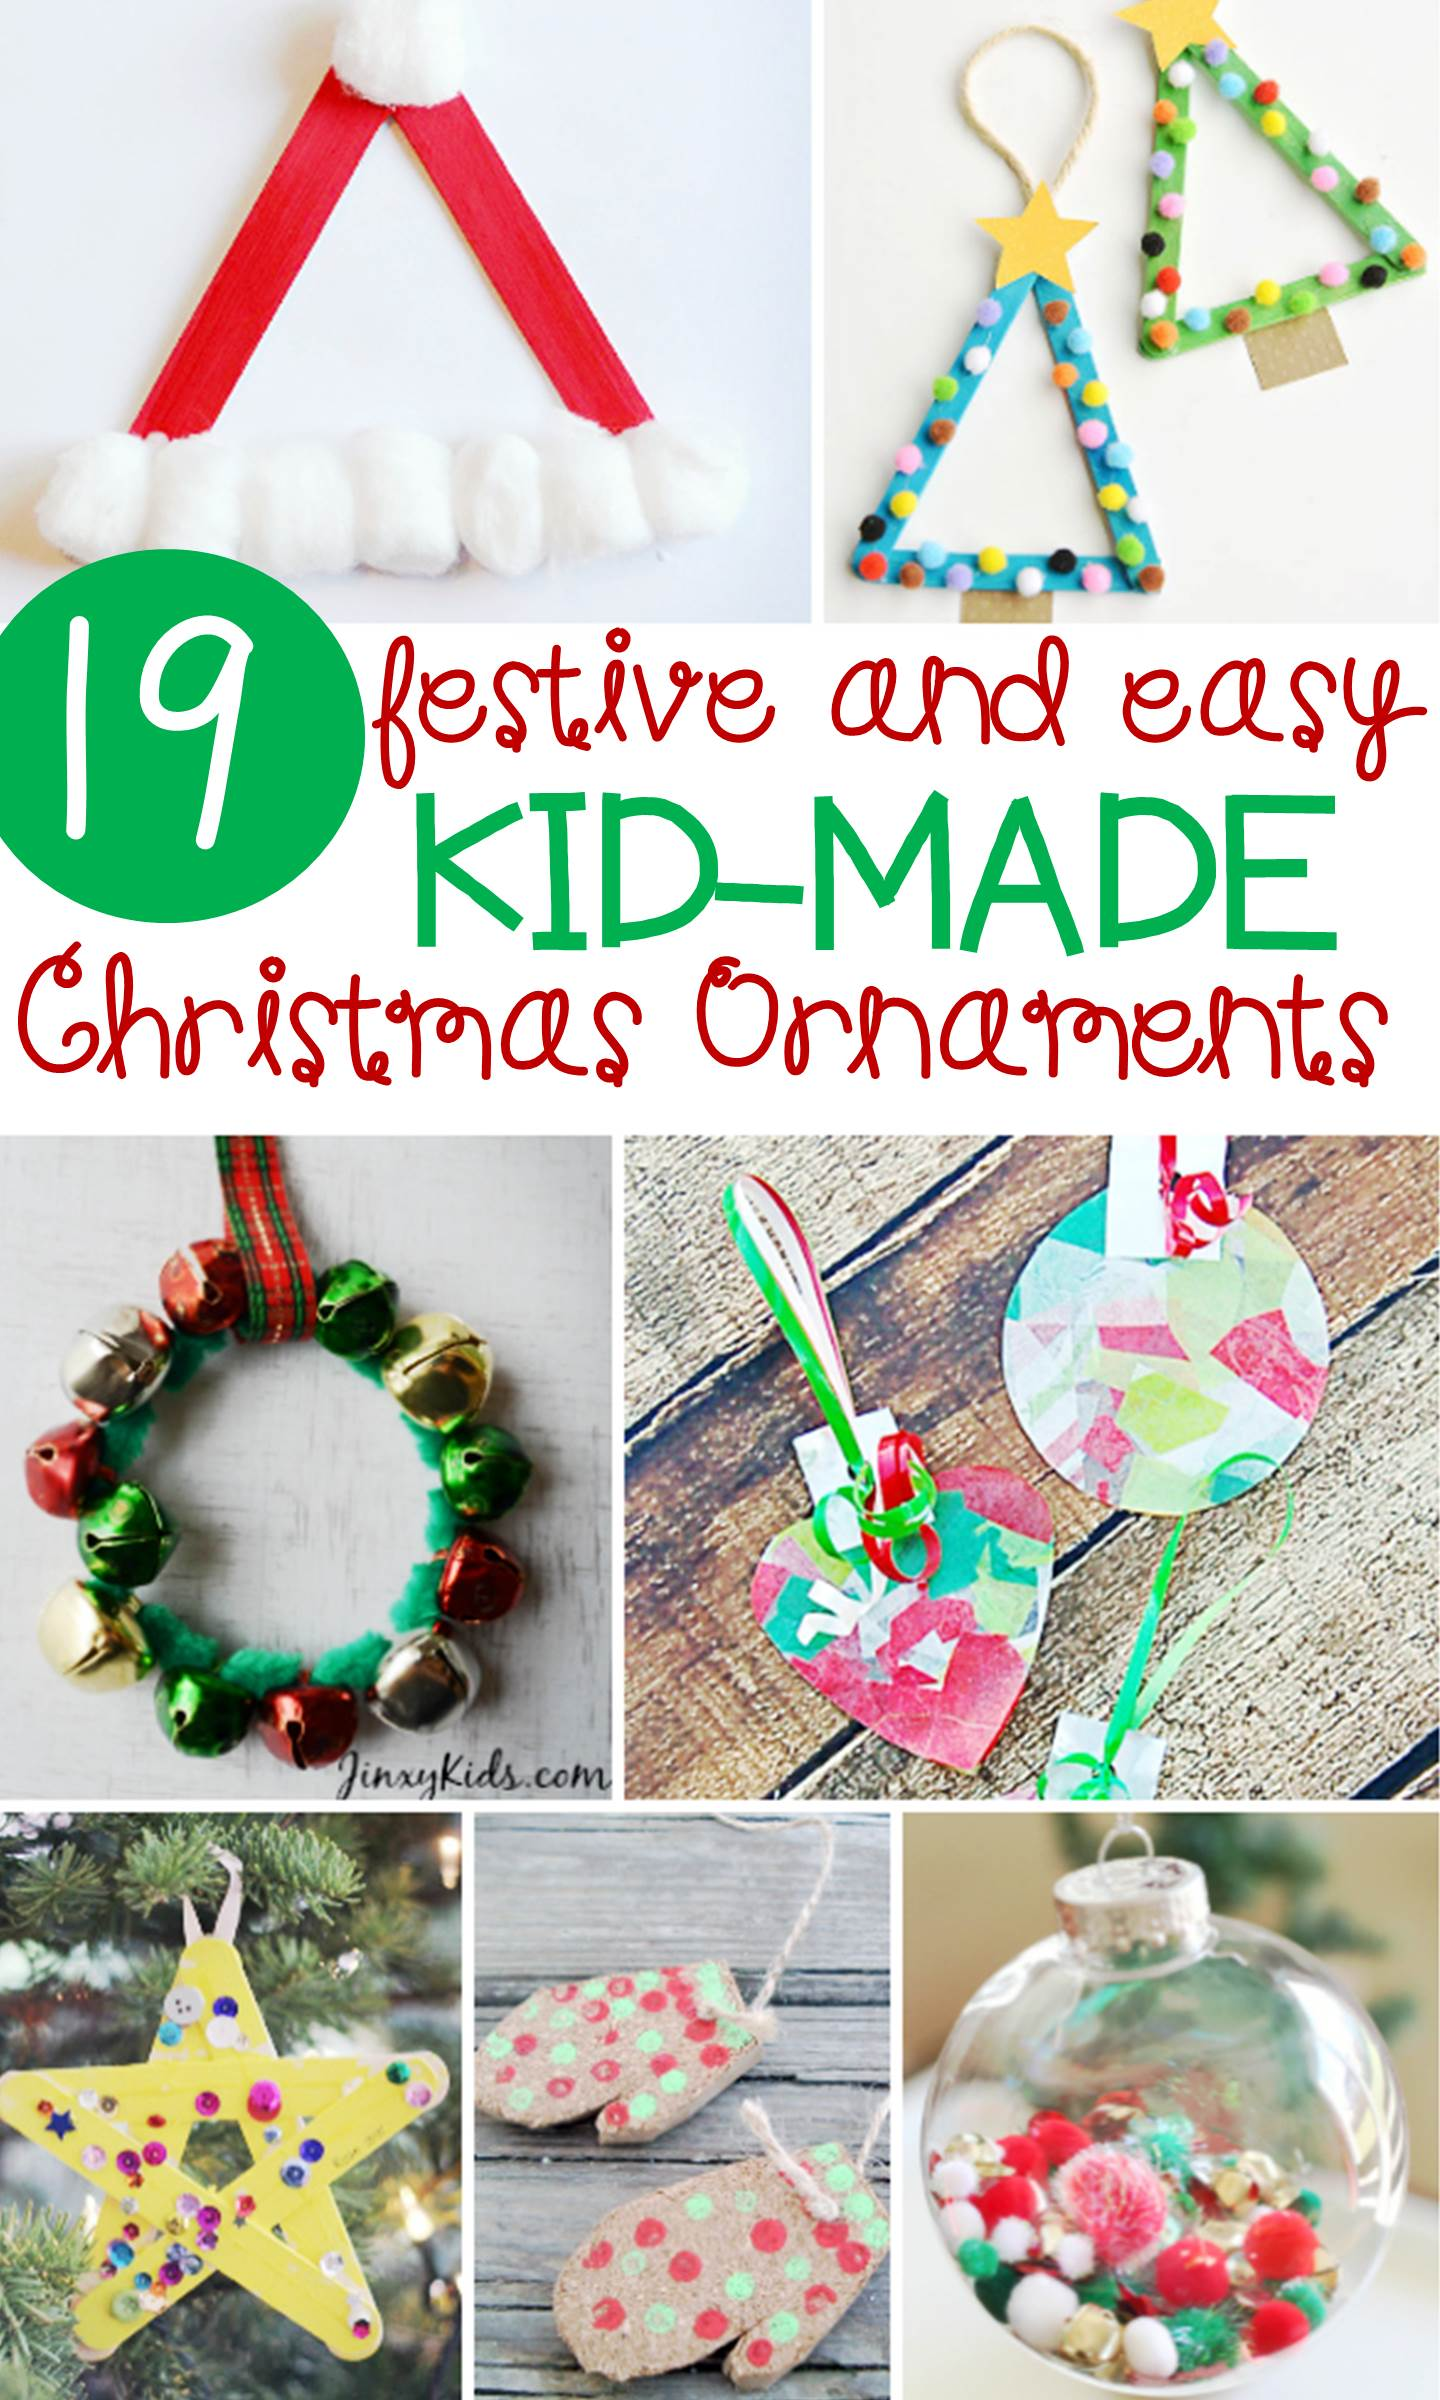 These 19 festive and easy Kids' Christmas ornaments are sure to give you some ideas for what you would like to make with your kids this year!